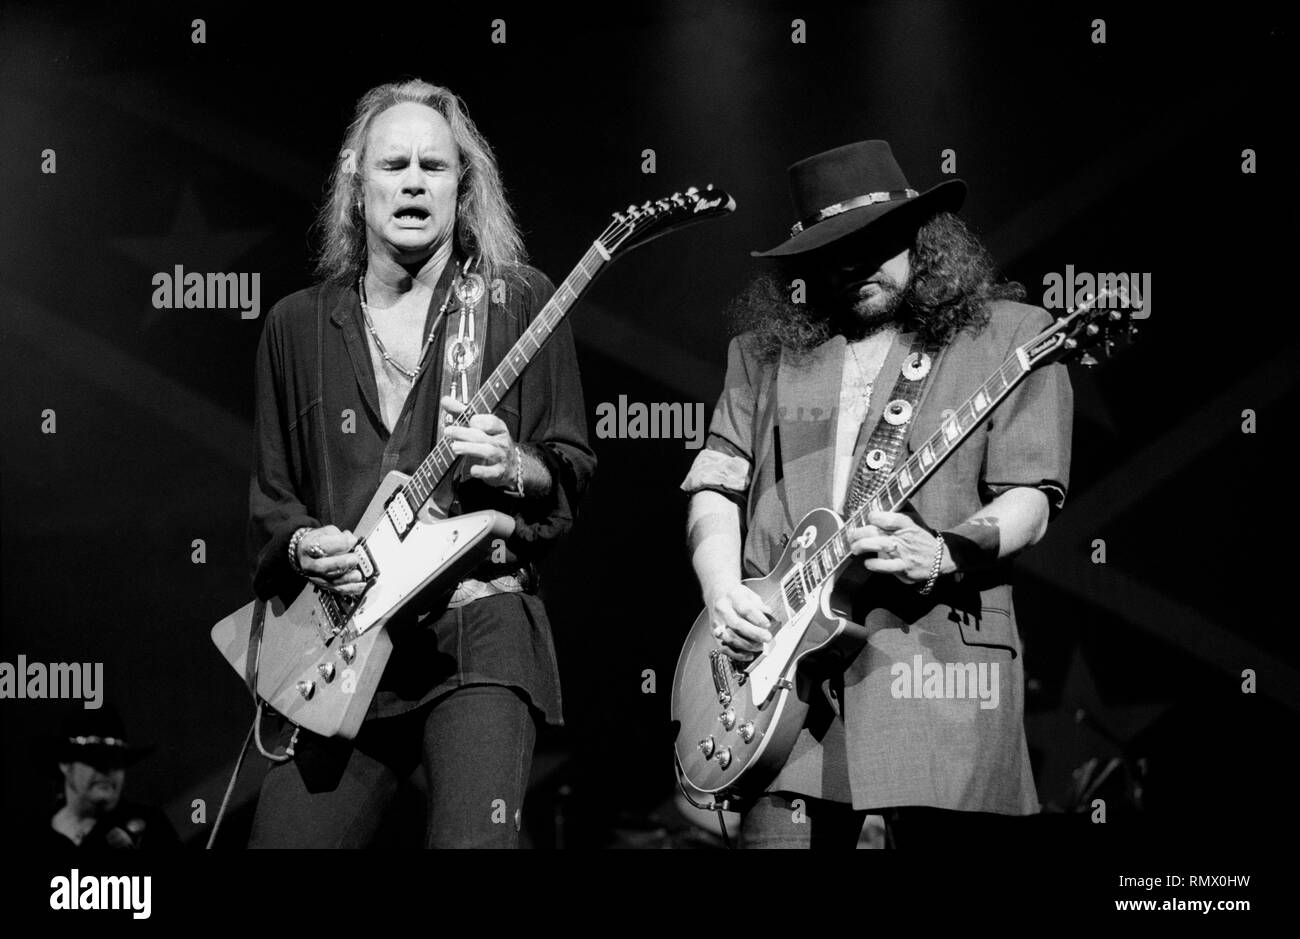 """Guitarists Rickey Medlocke and Gary Rossington are shown performing on stage during a """"live"""" concert appearance with the Lynyrd Skynyrd. Stock Photo"""